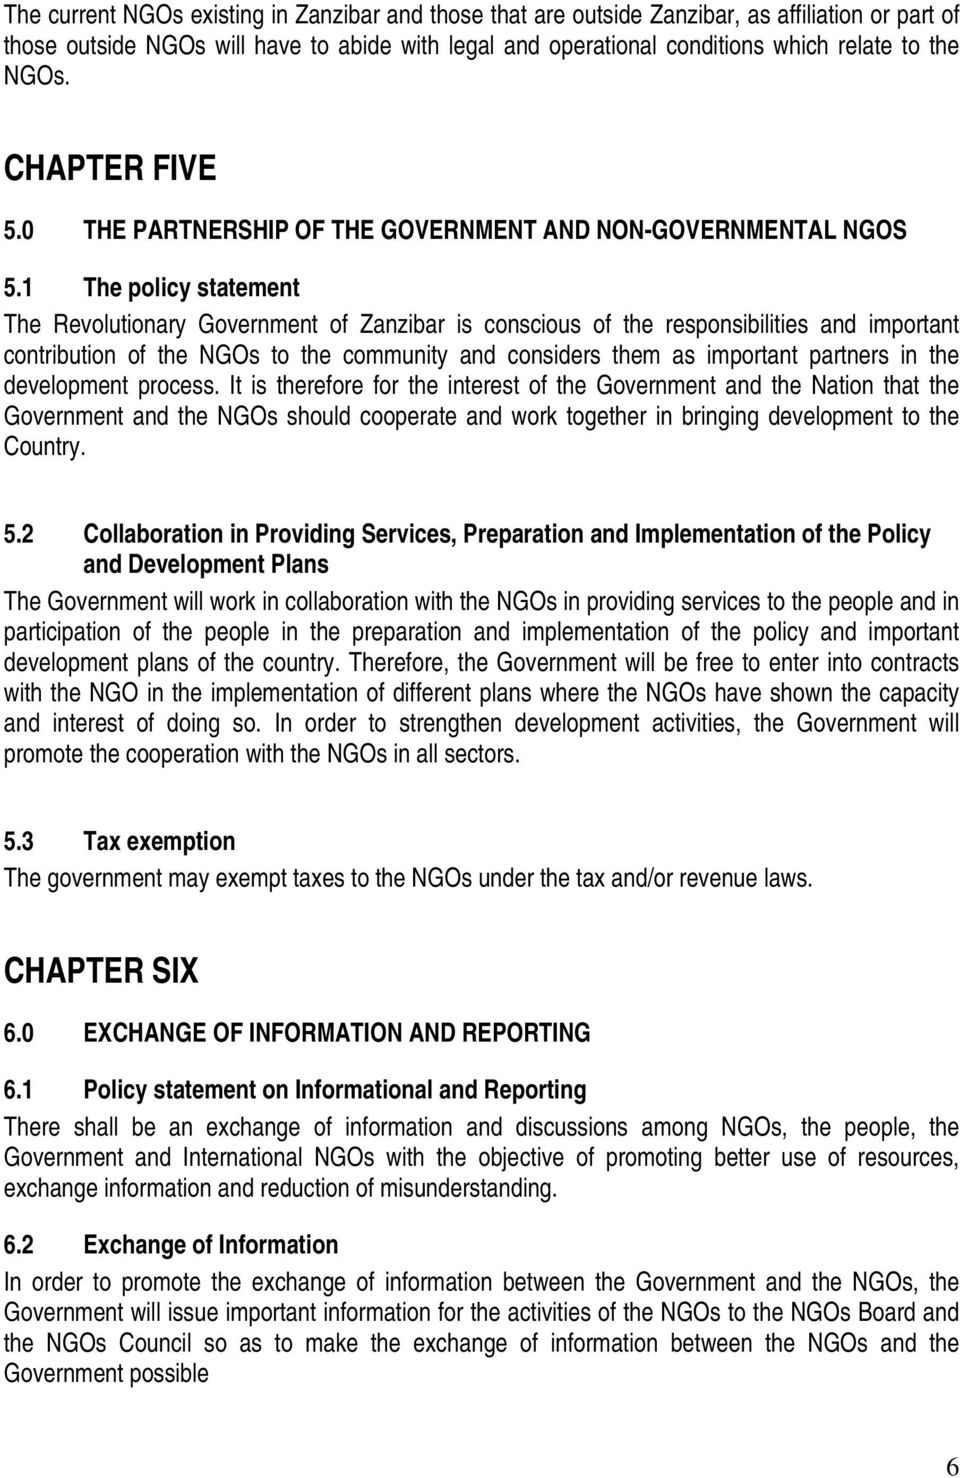 1 The policy statement The Revolutionary Government of Zanzibar is conscious of the responsibilities and important contribution of the NGOs to the community and considers them as important partners